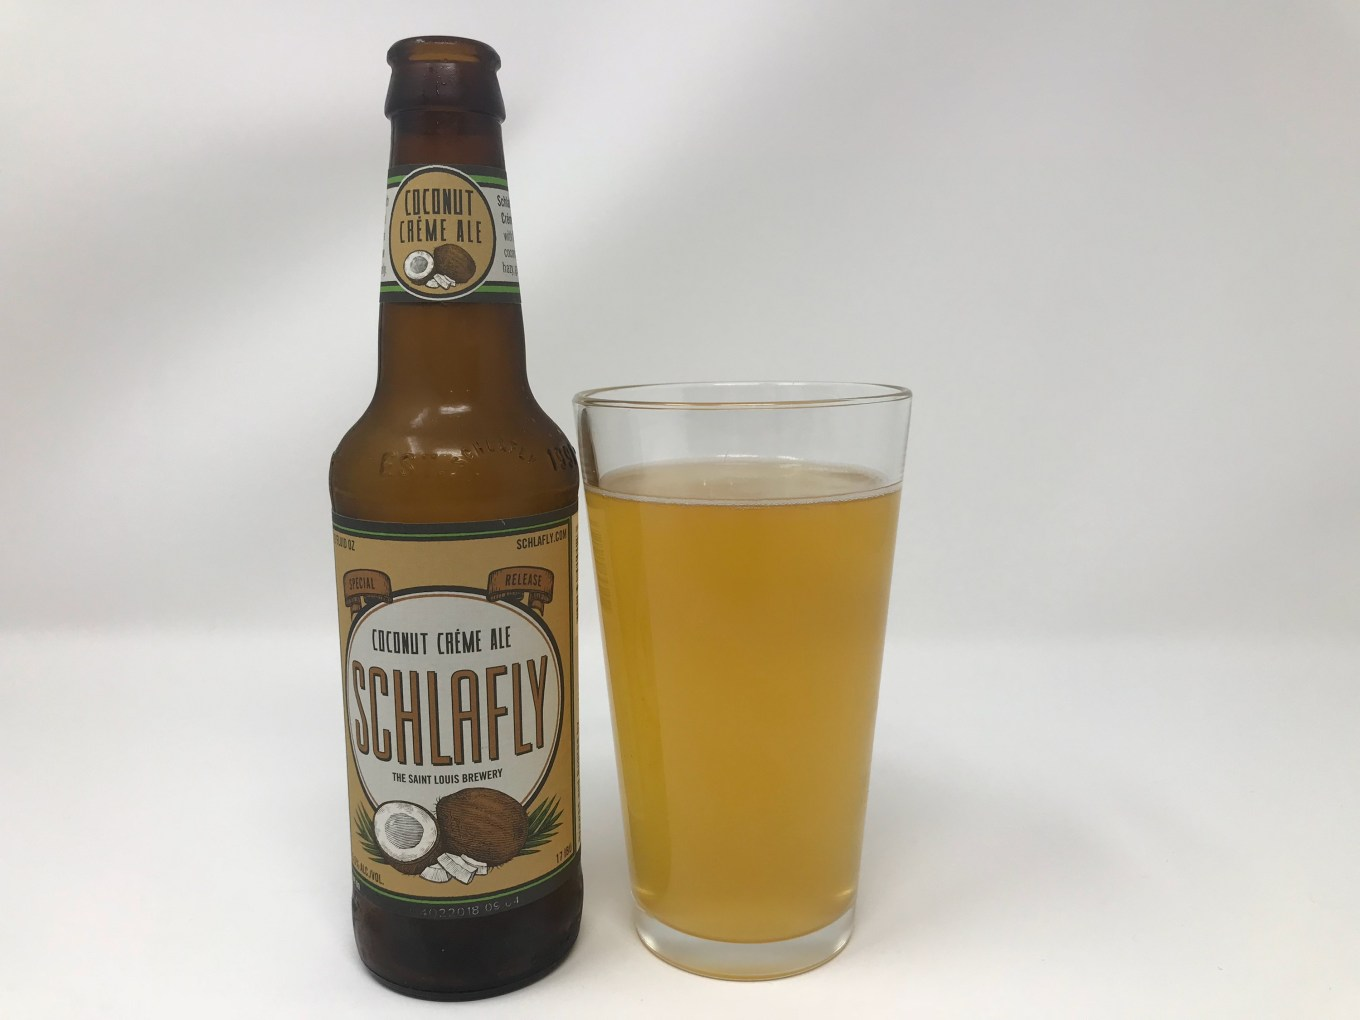 Schlafly Coconut Creme Ale